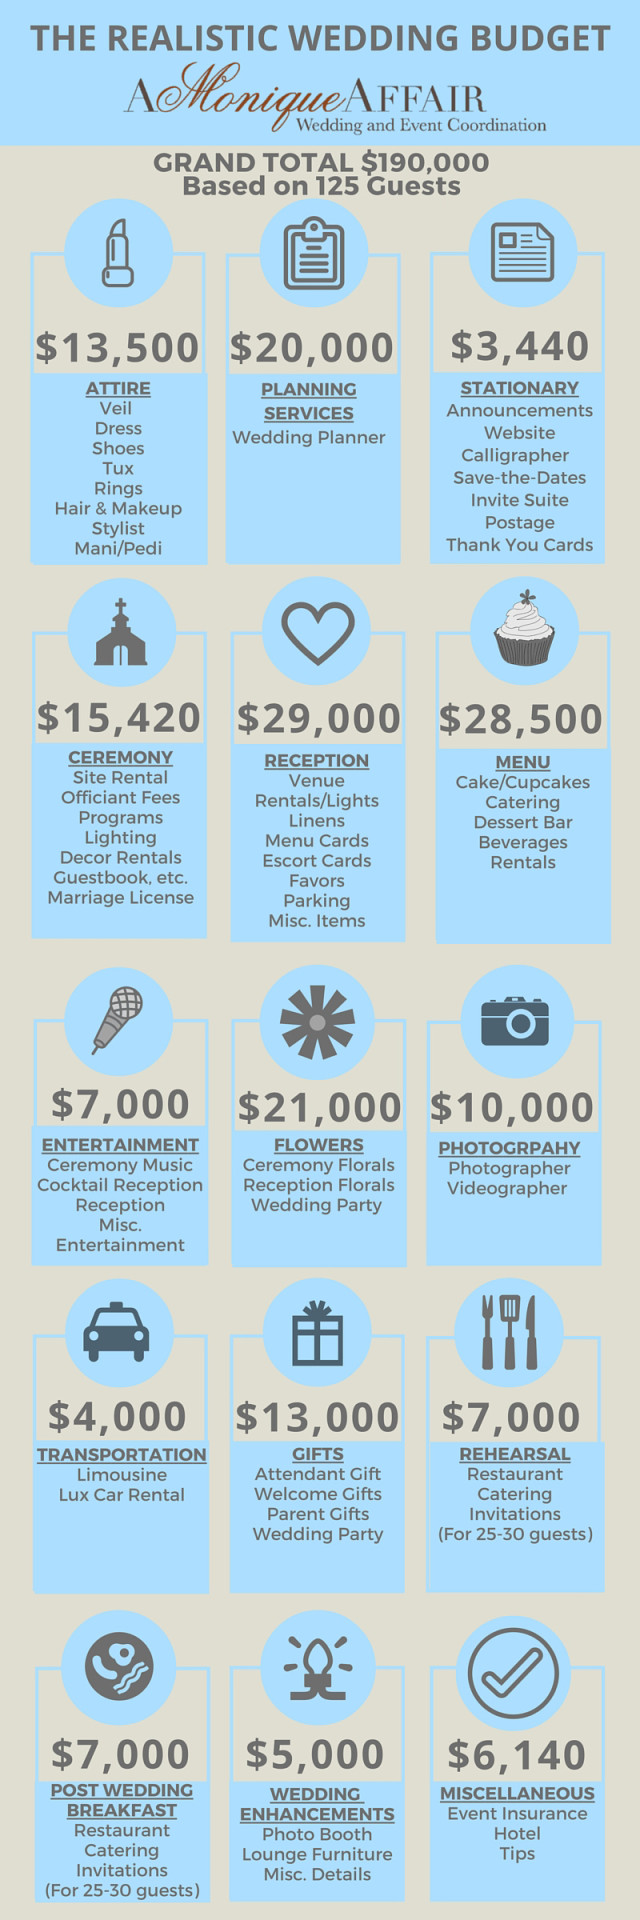 The Realistic Wedding Budget